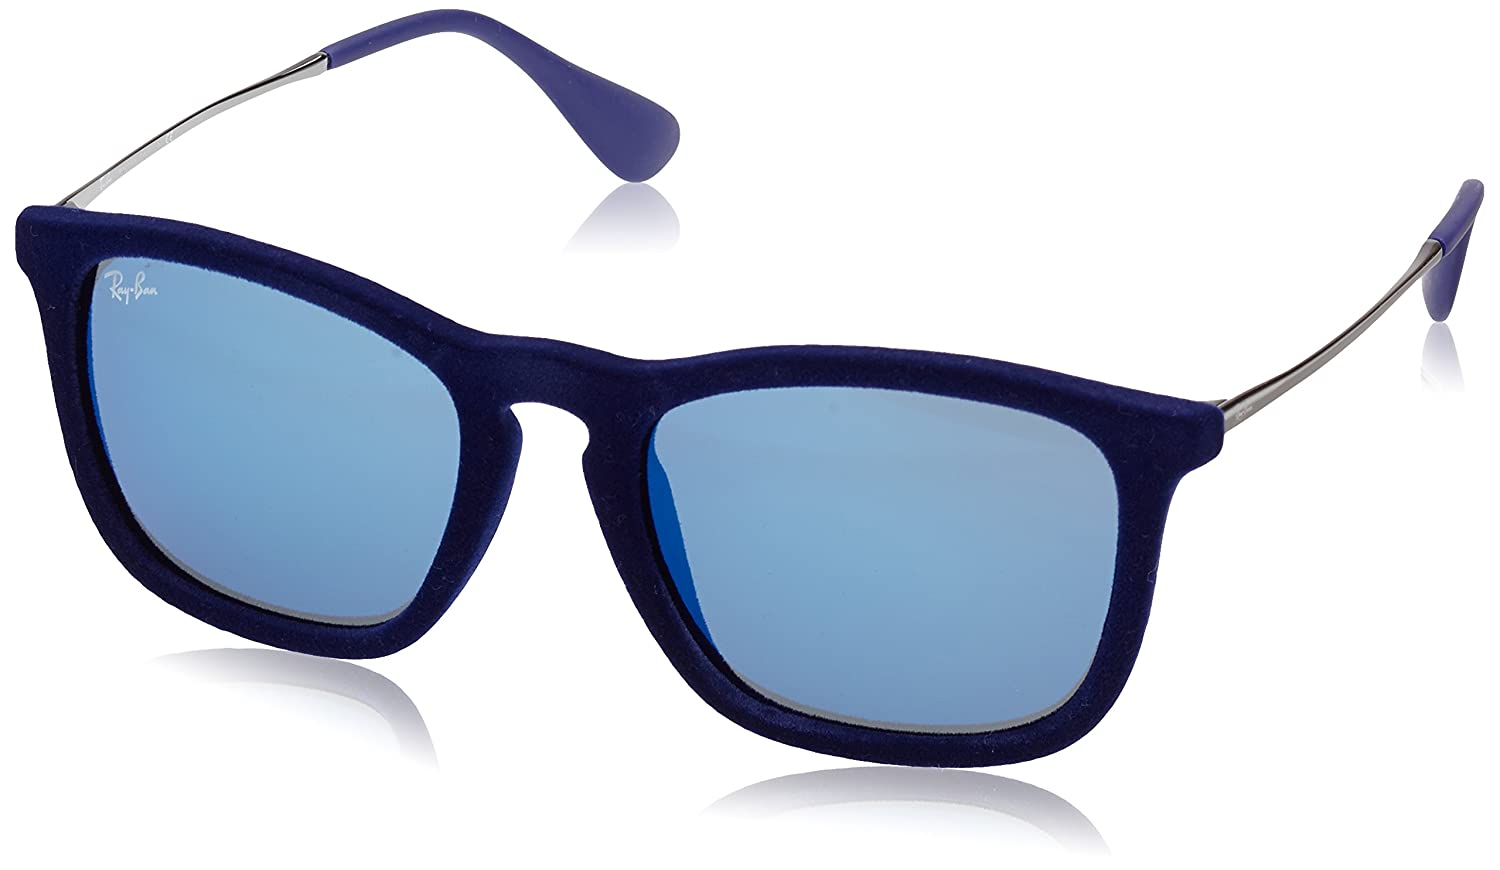 Ray Ban RB Gafas de Sol Unisex Azul Flock Blue mm